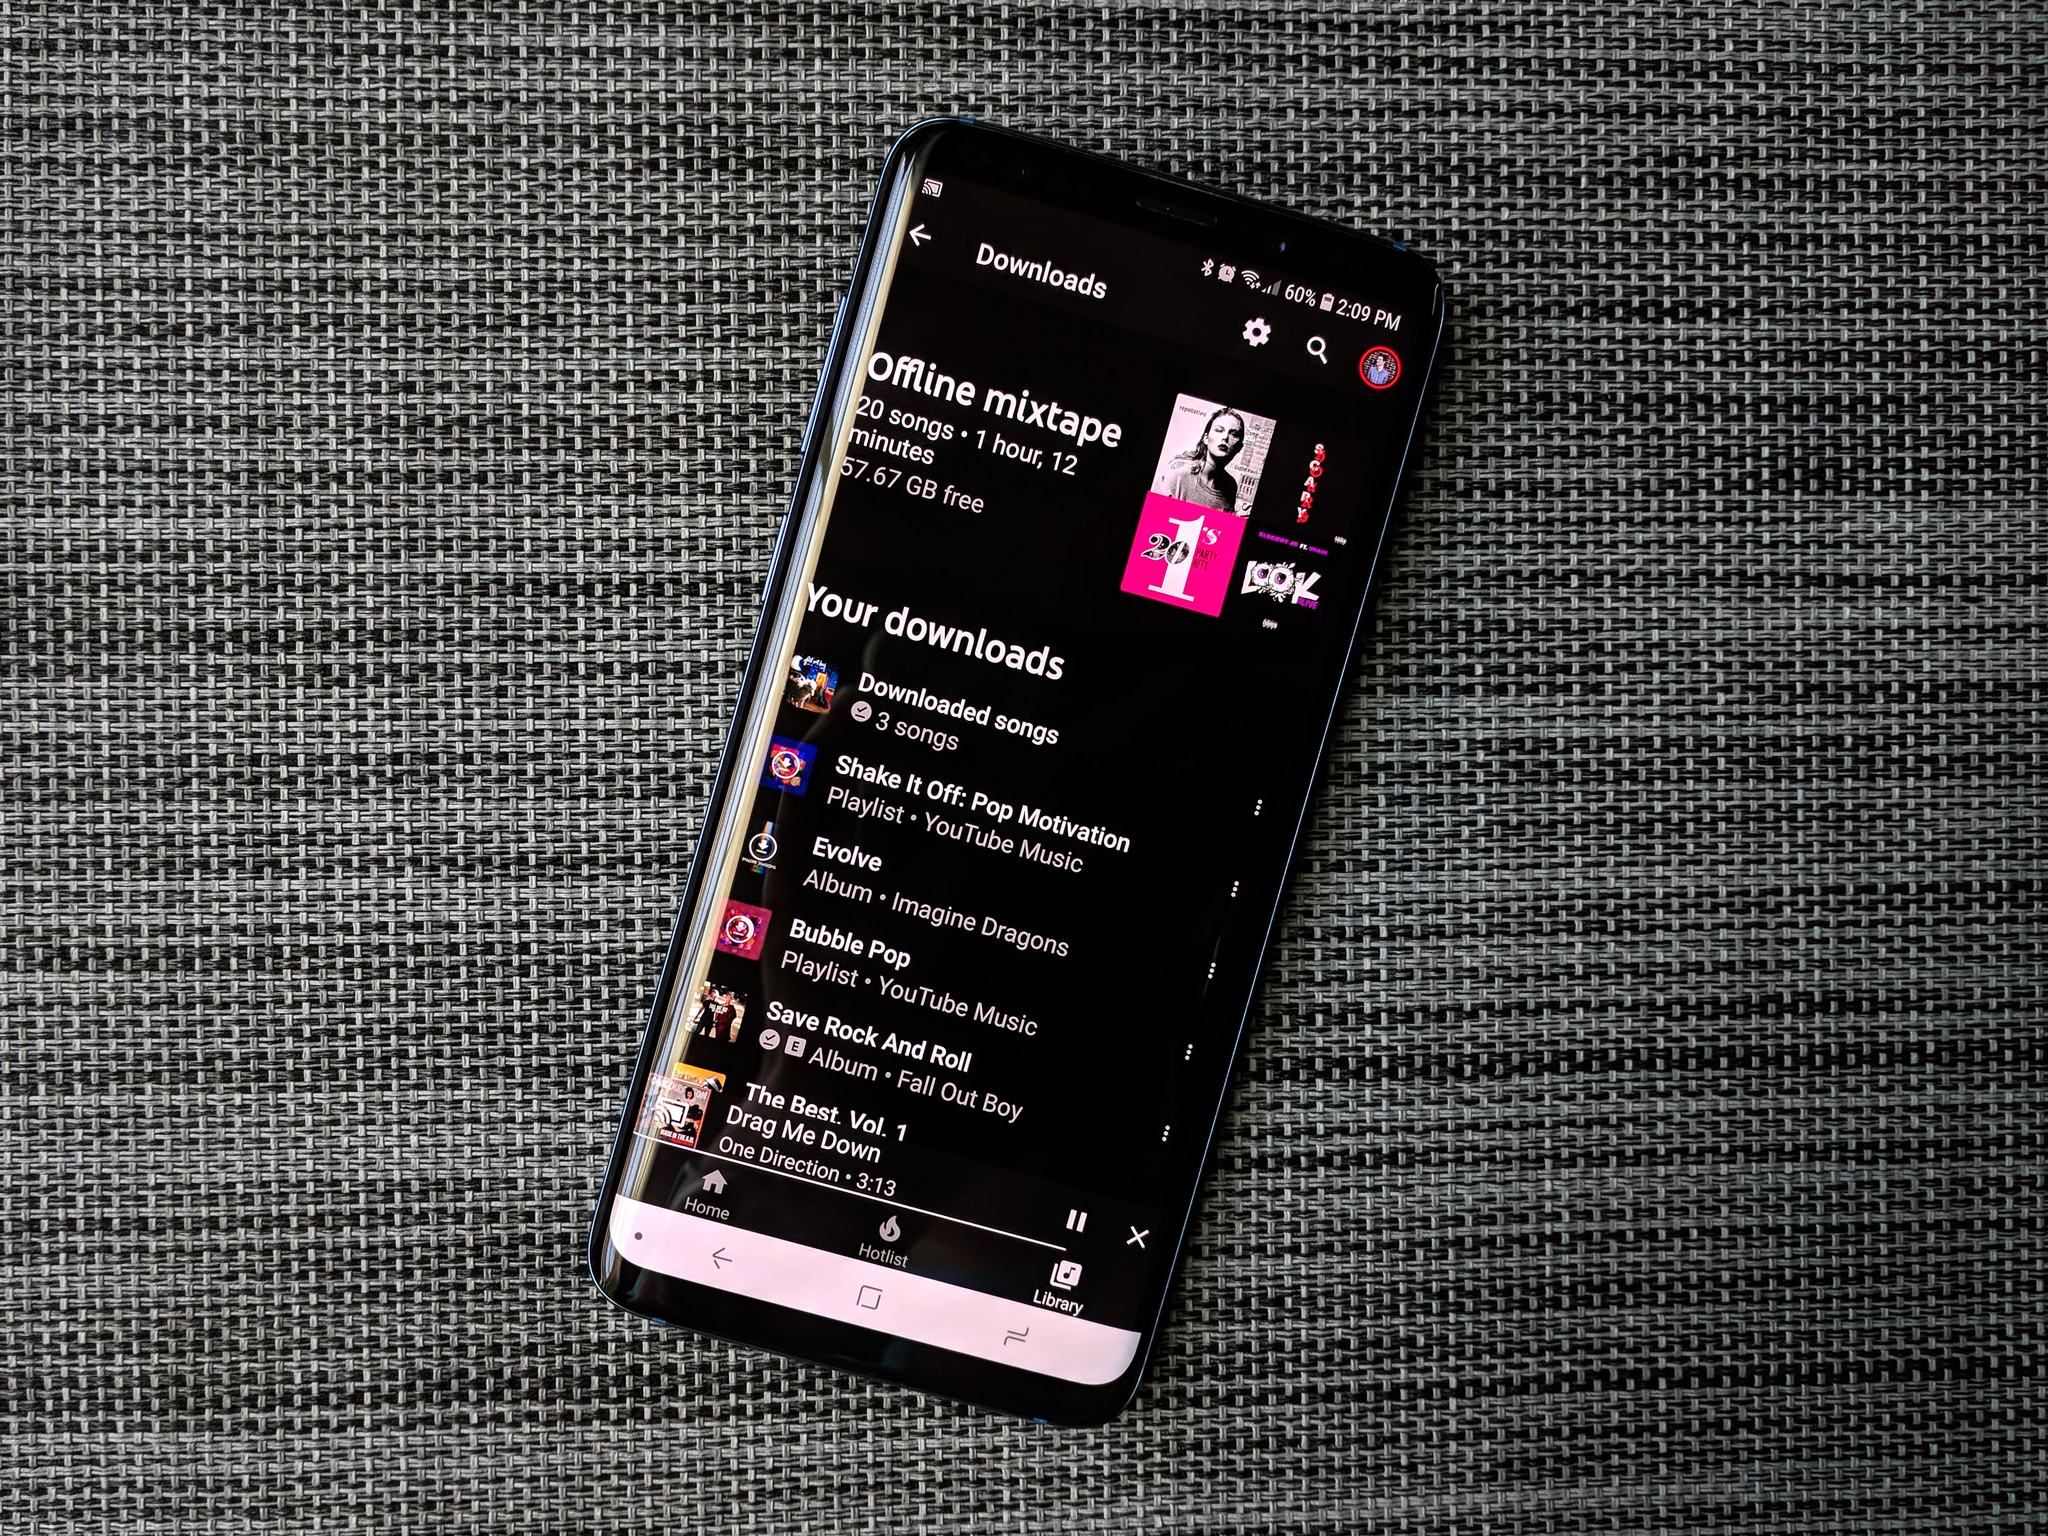 How to download music in YouTube Music for offline playback     Diamond in the Rough